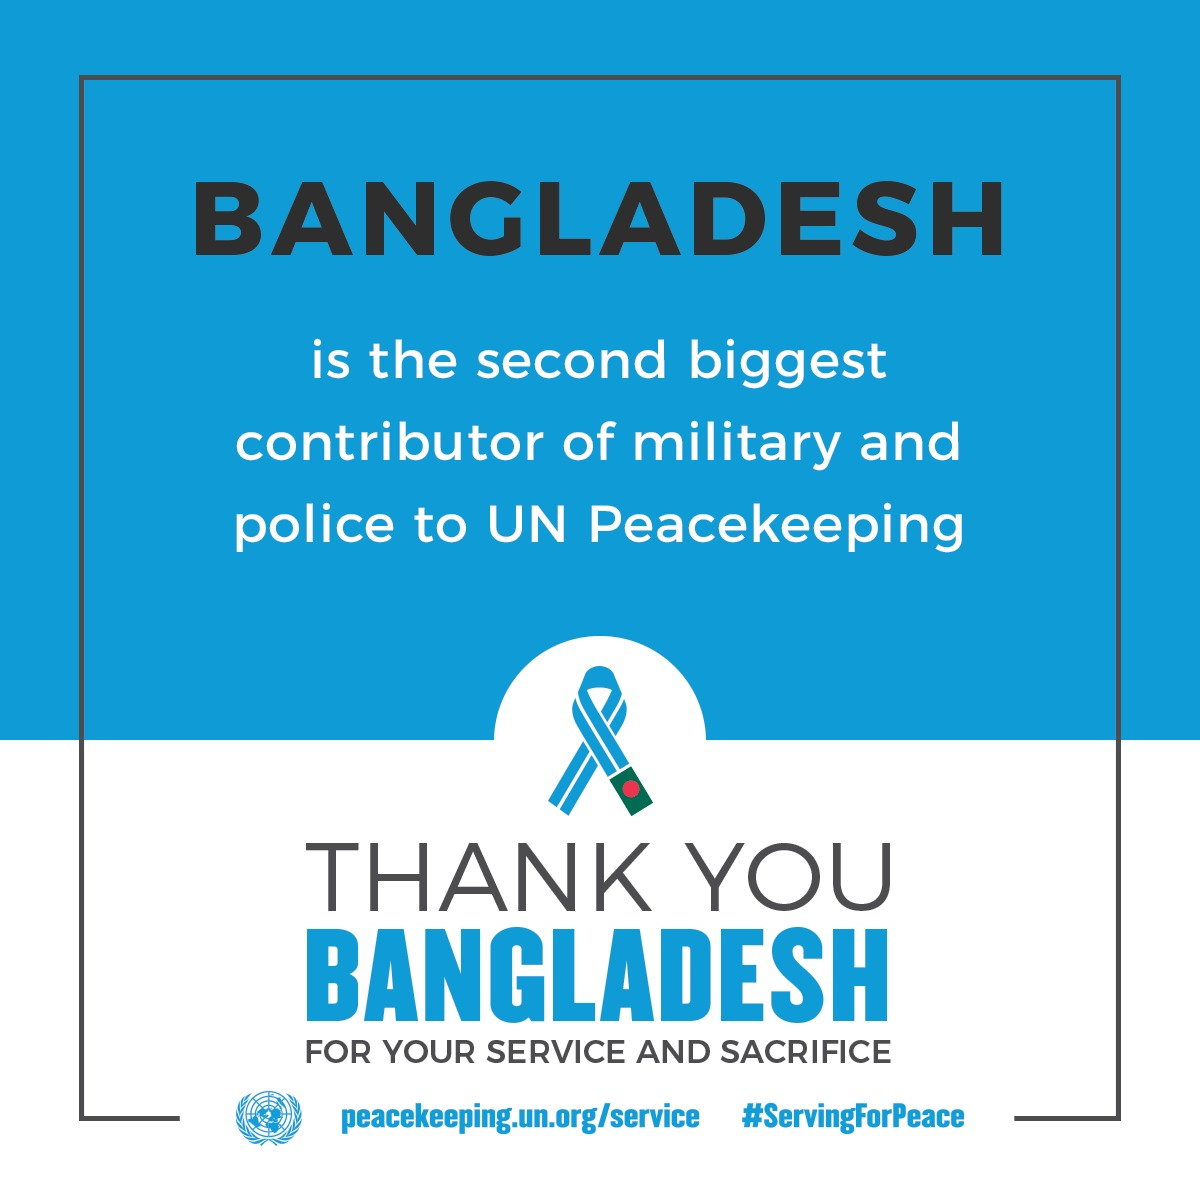 Bangladesh is the second biggest contributor of military and police